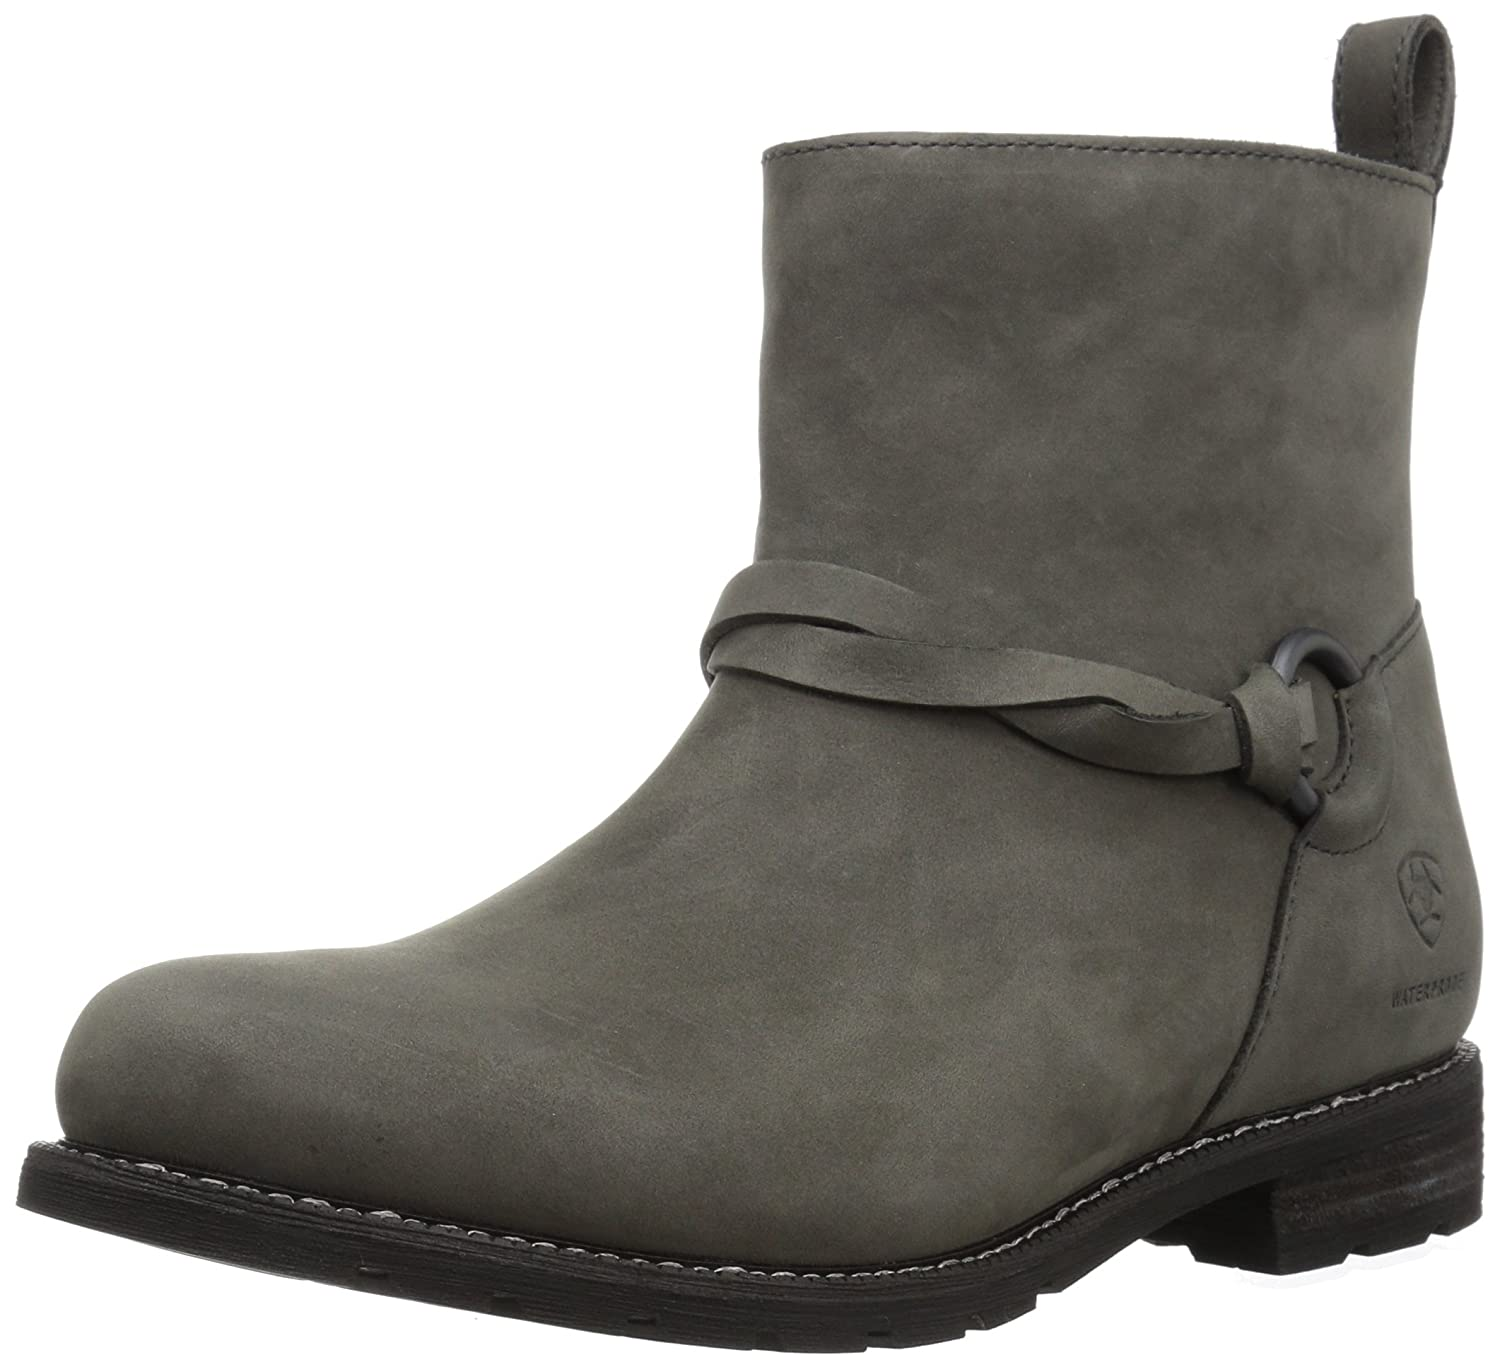 Storm ARIAT Womens Witney H2o Work Boot